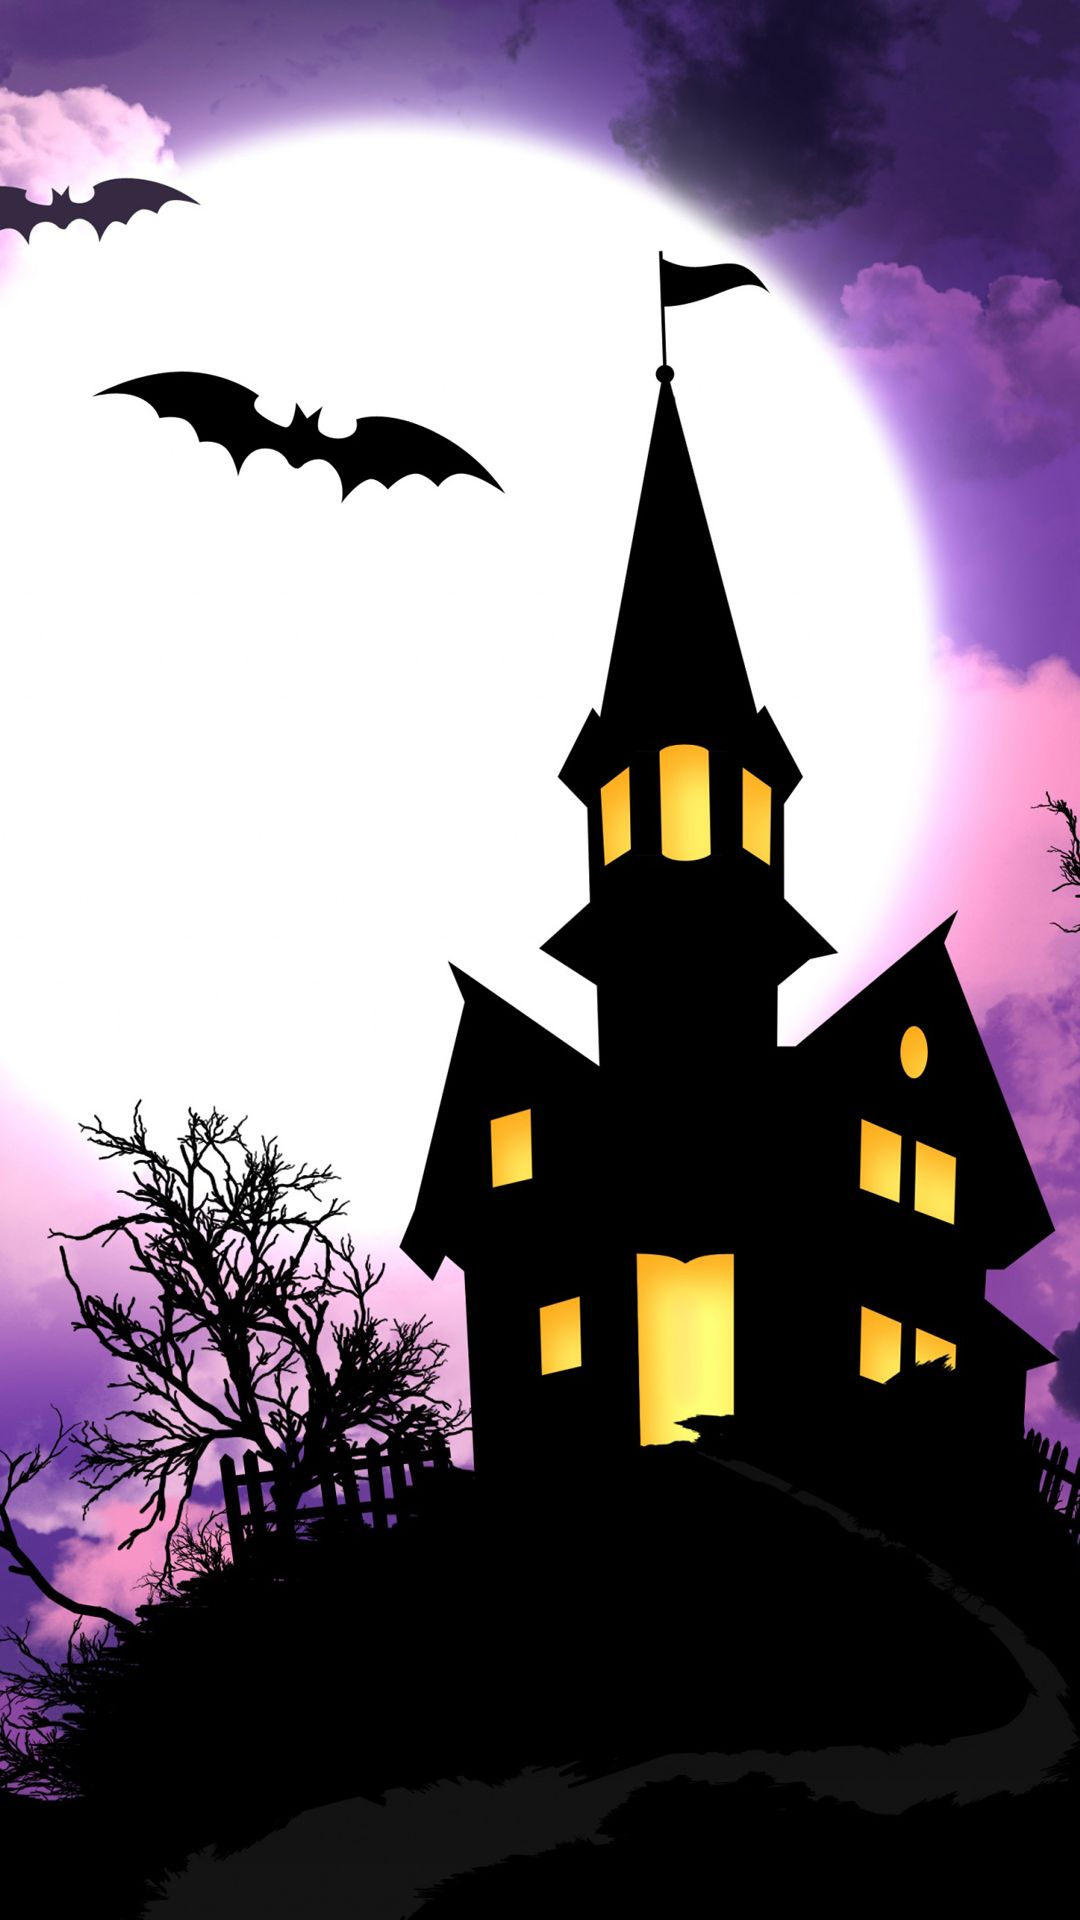 1080x1920 Spooky Halloween House Illustration Android Wallpaper free ...